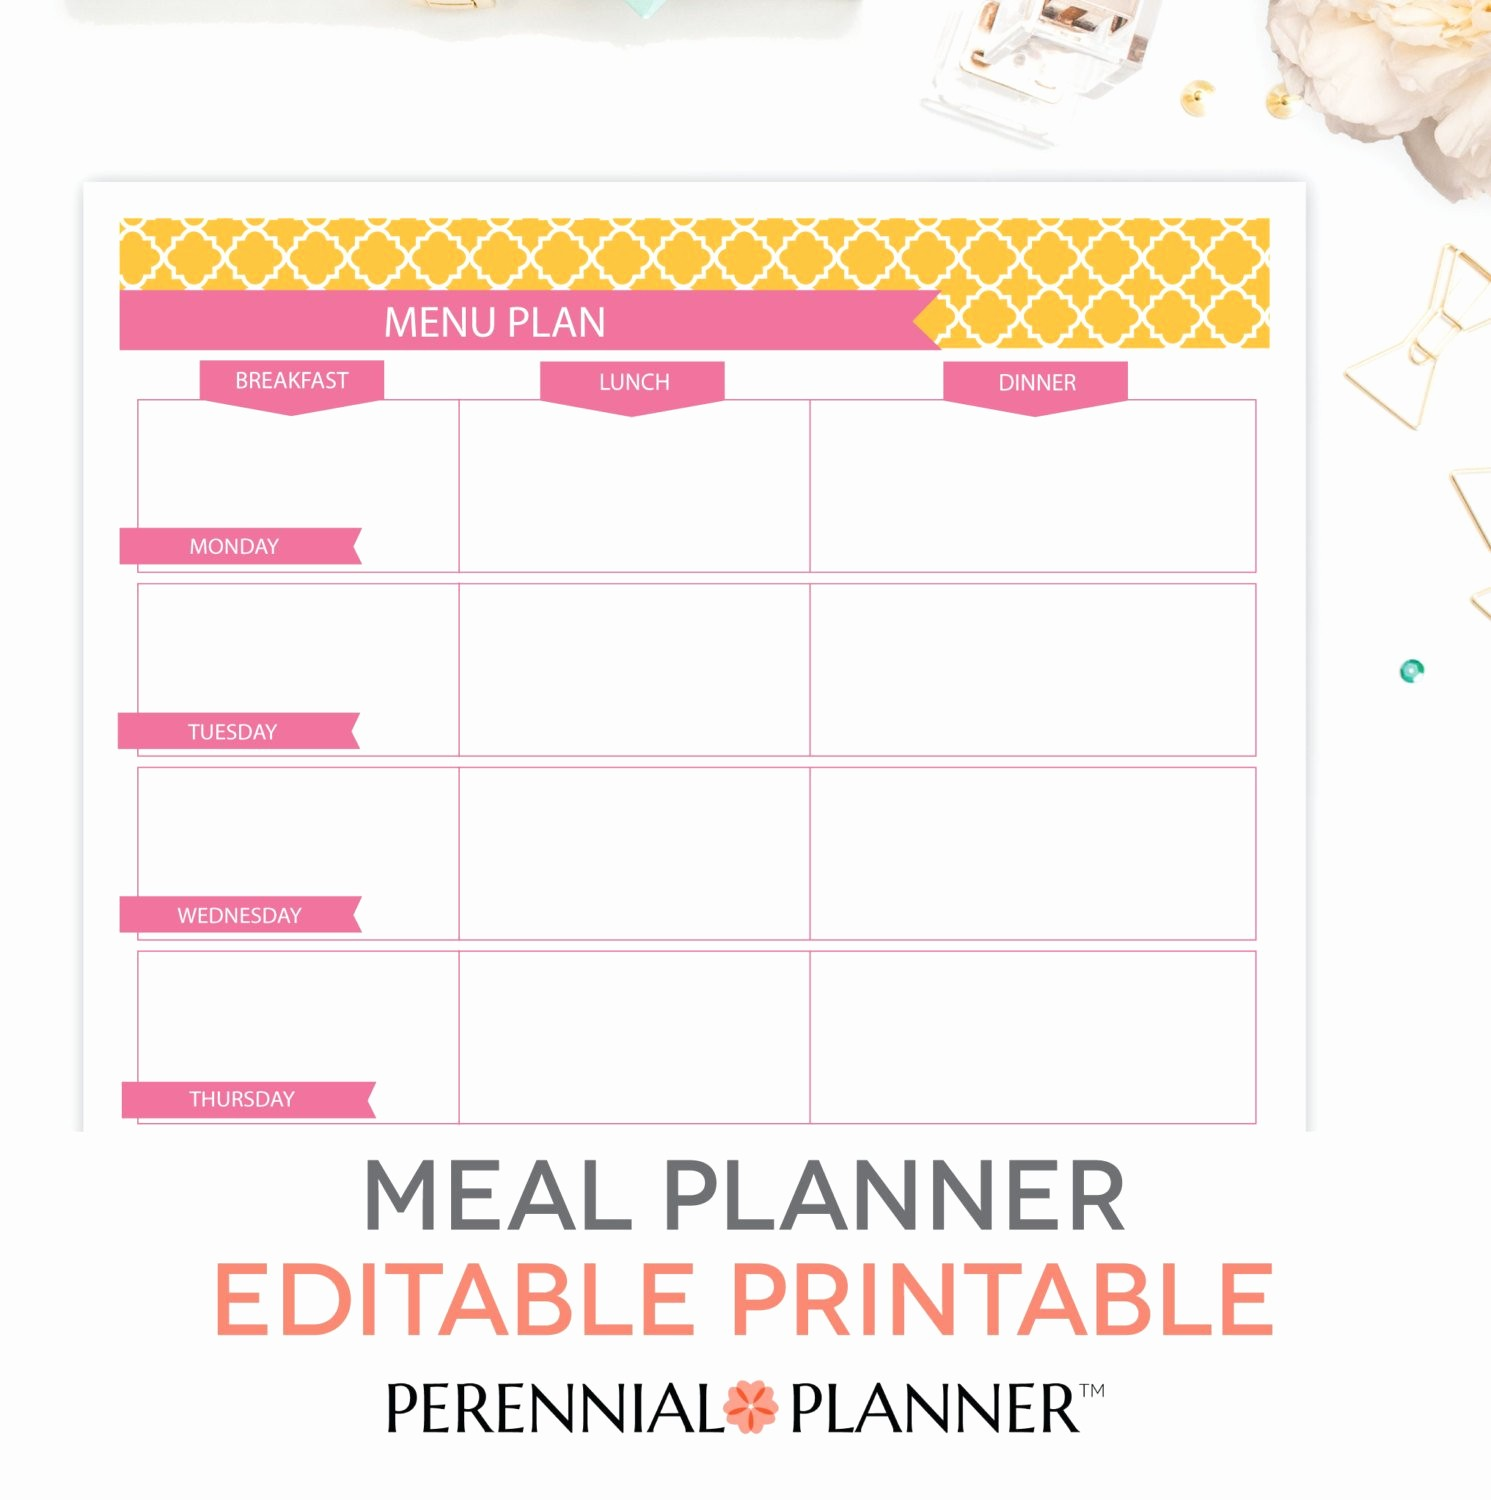 Free Printable Dinner Menu Templates New Menu Plan Weekly Meal Planning Template Printable Editable